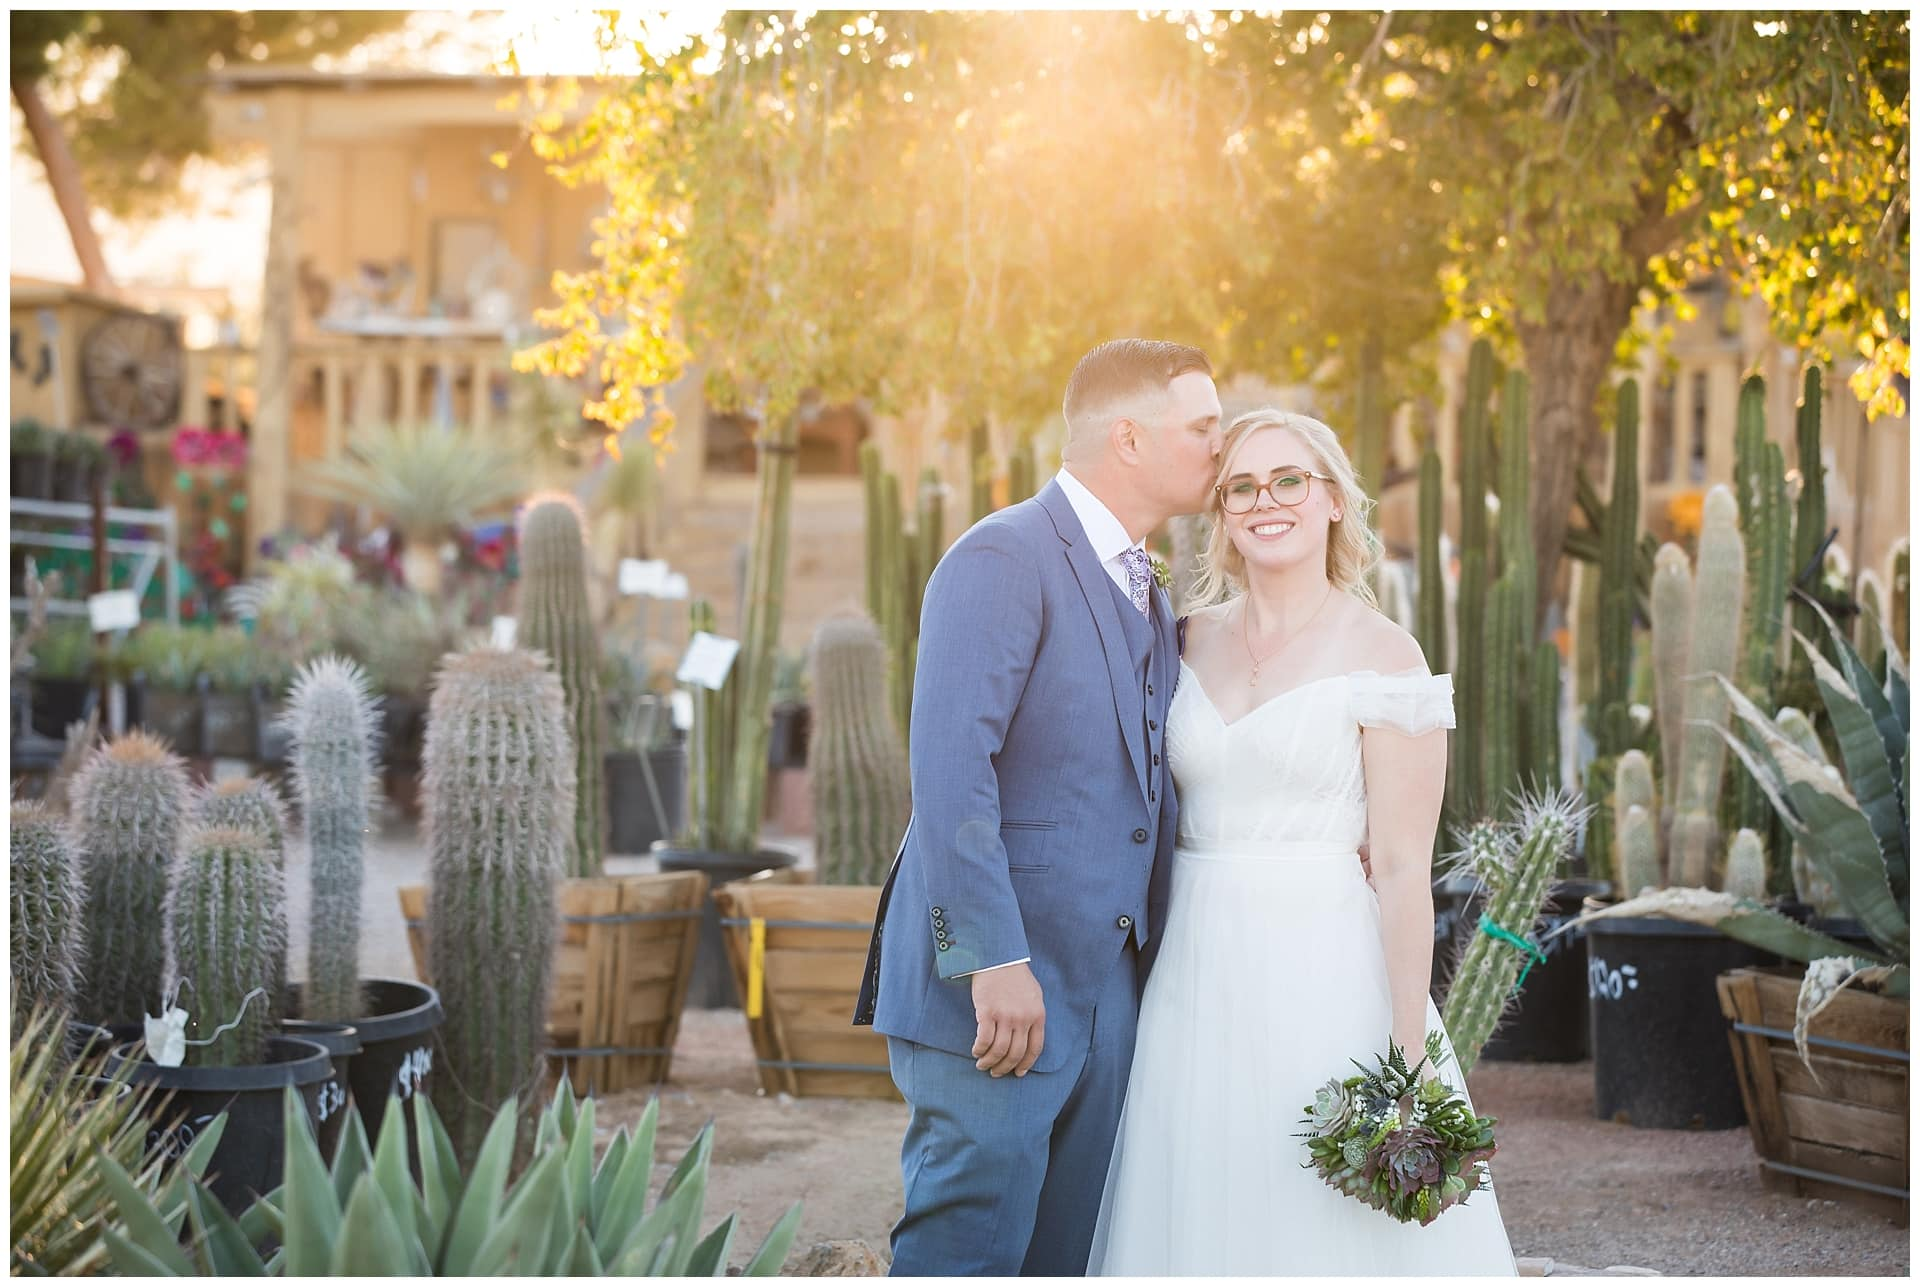 Las Vegas Elopement Packages at Cactus Joe's